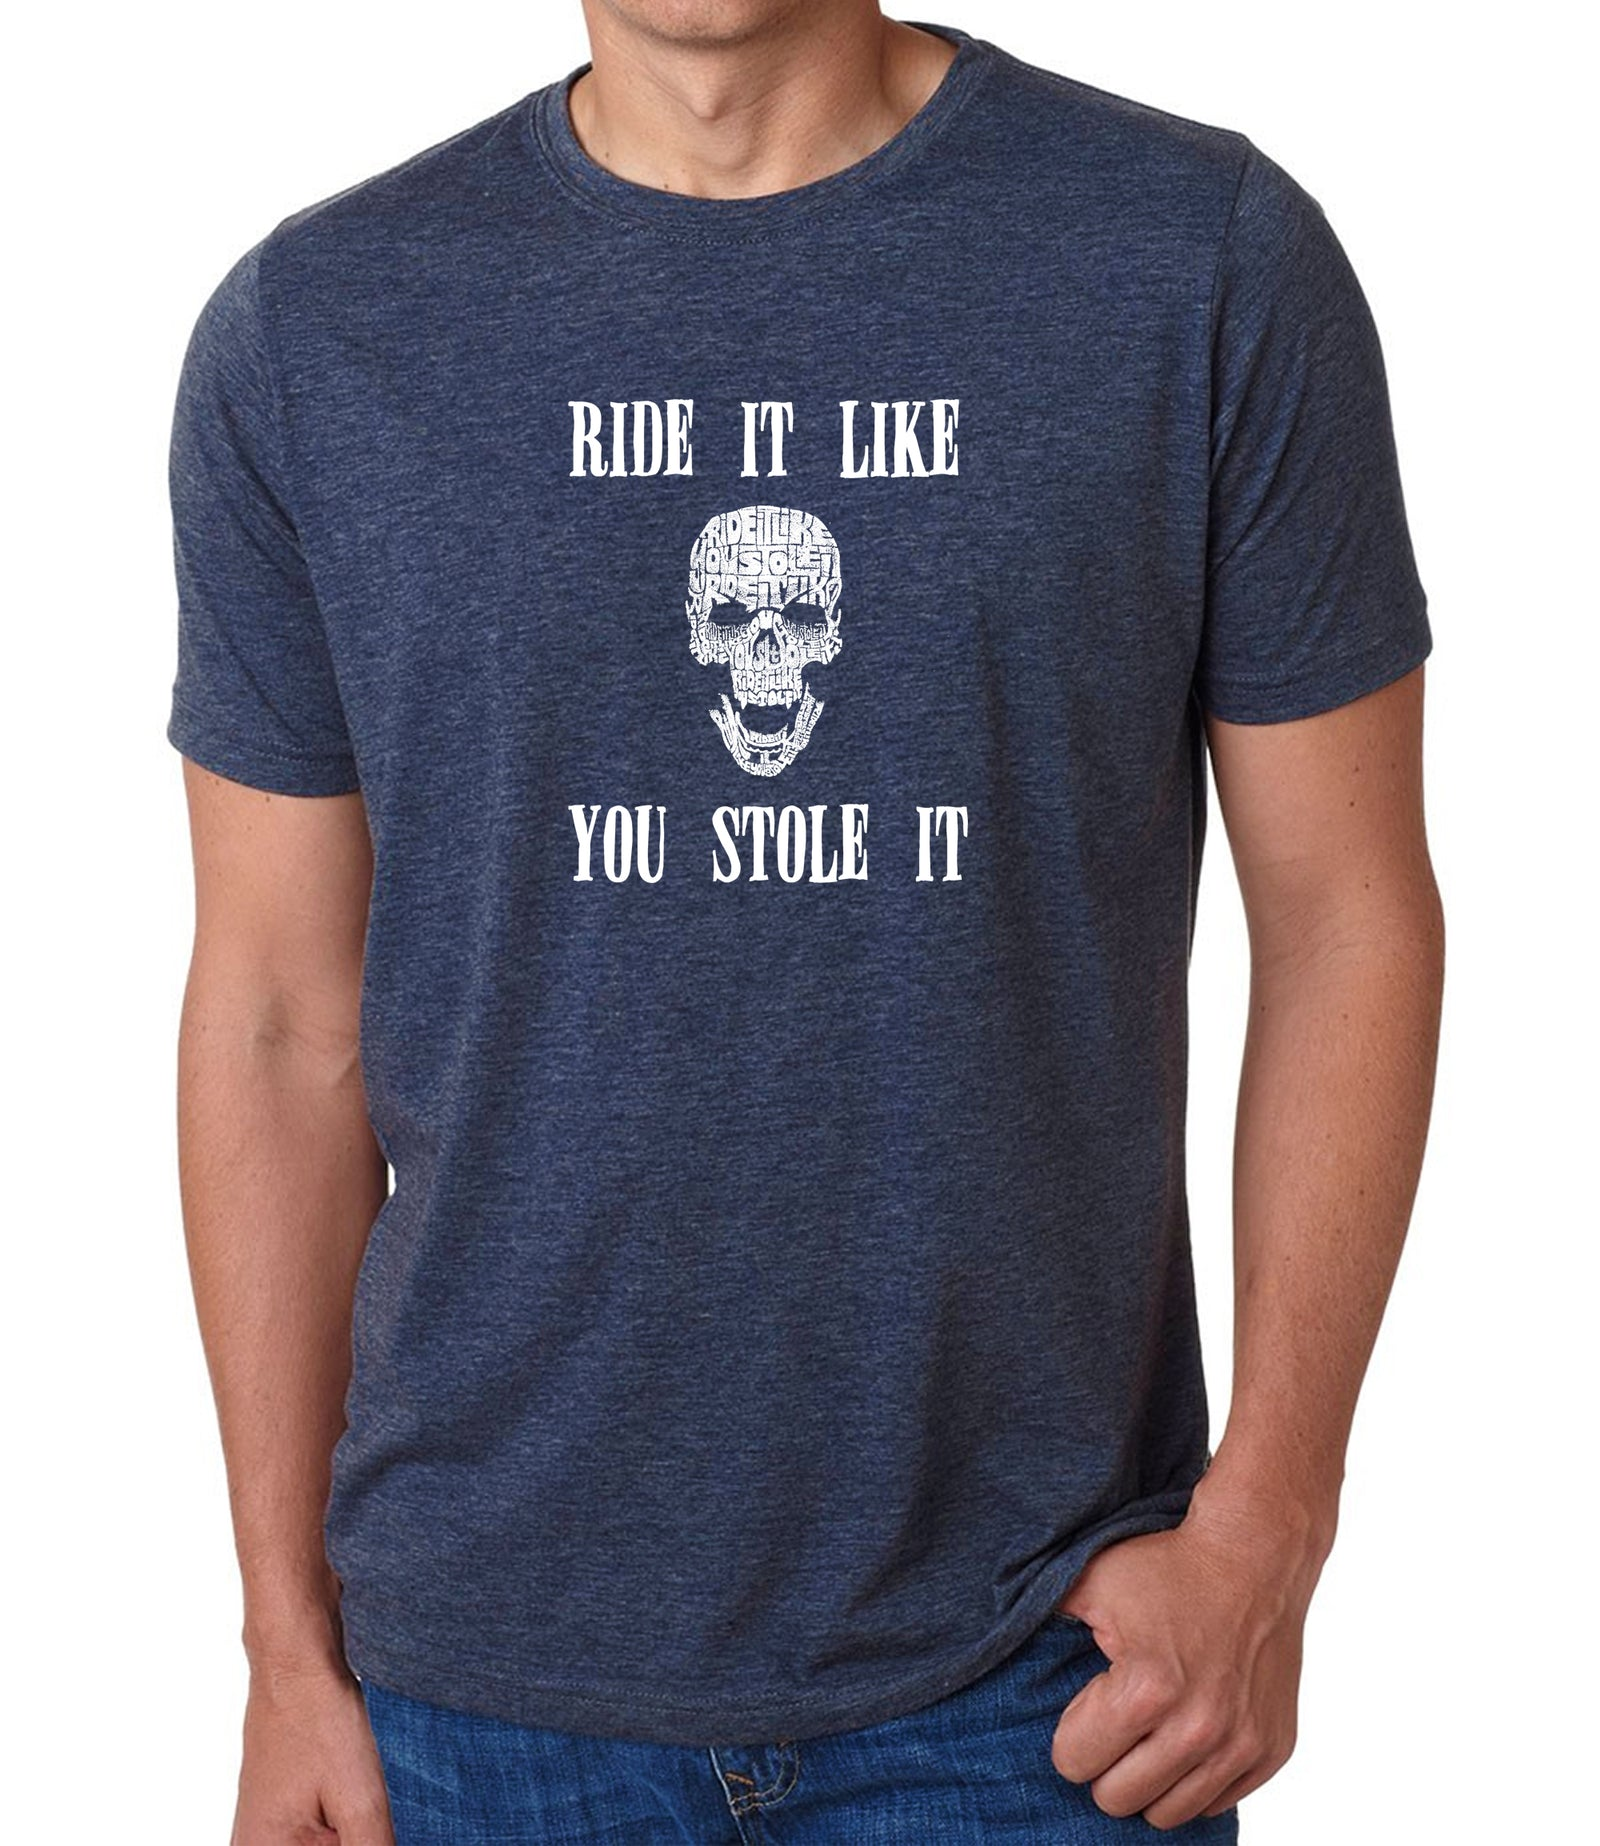 Men's Premium Blend Word Art T-shirt - Ride It Like You Stole It